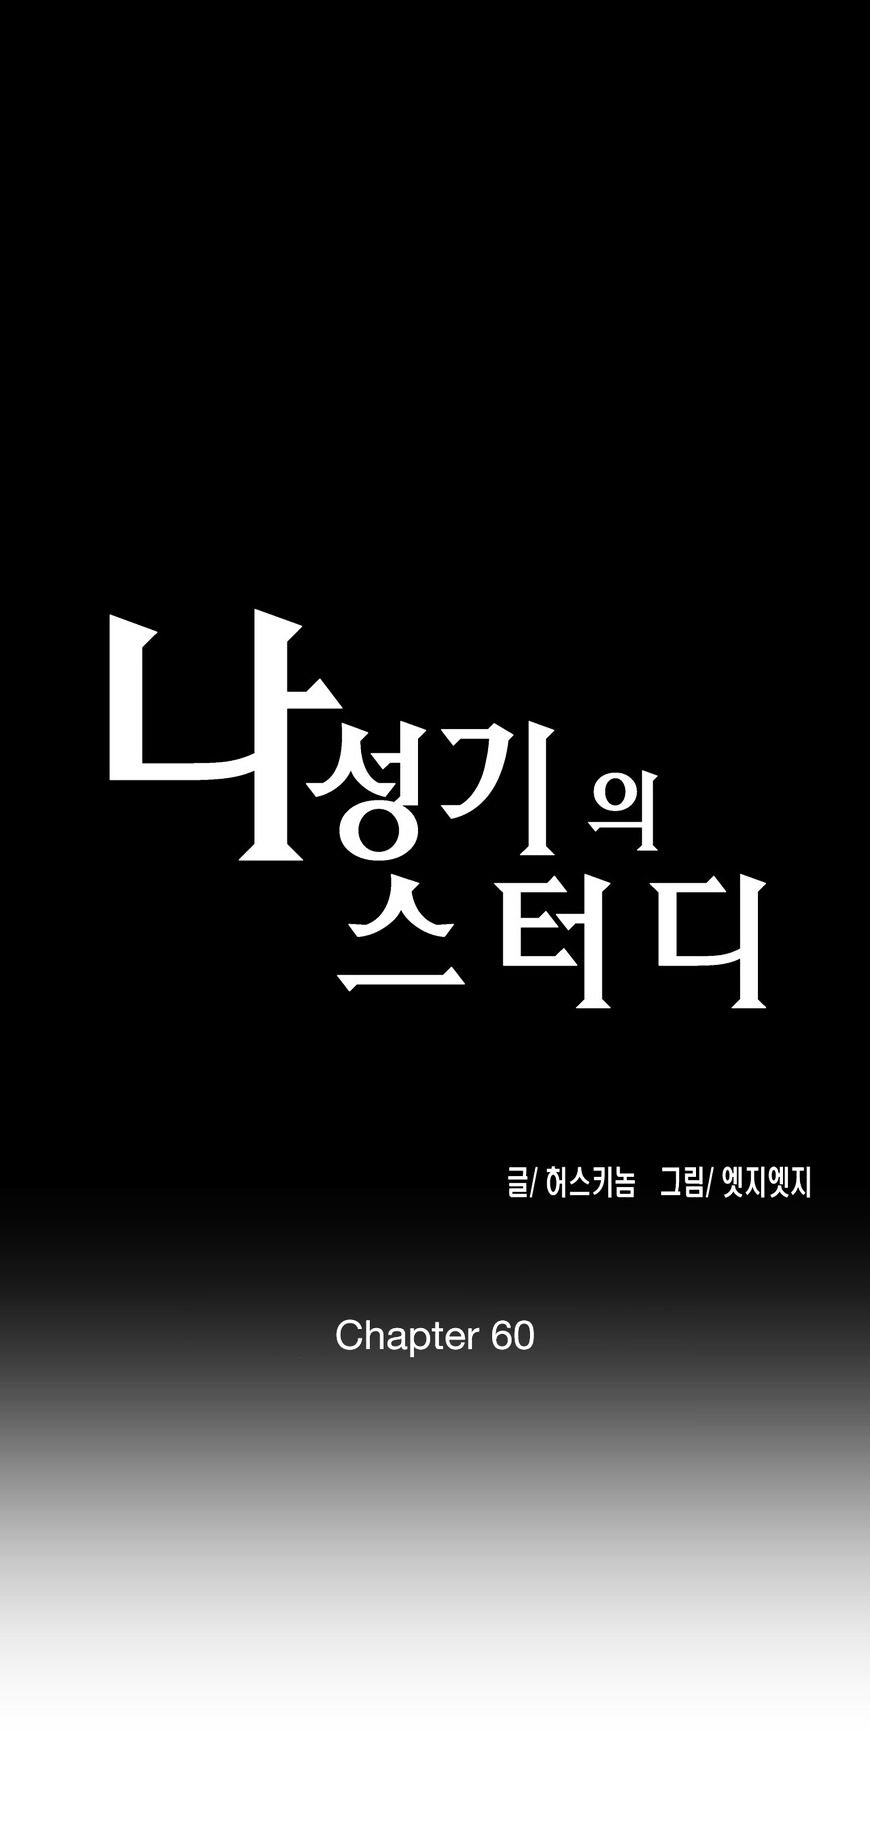 SStudy - chapter 60 - #2